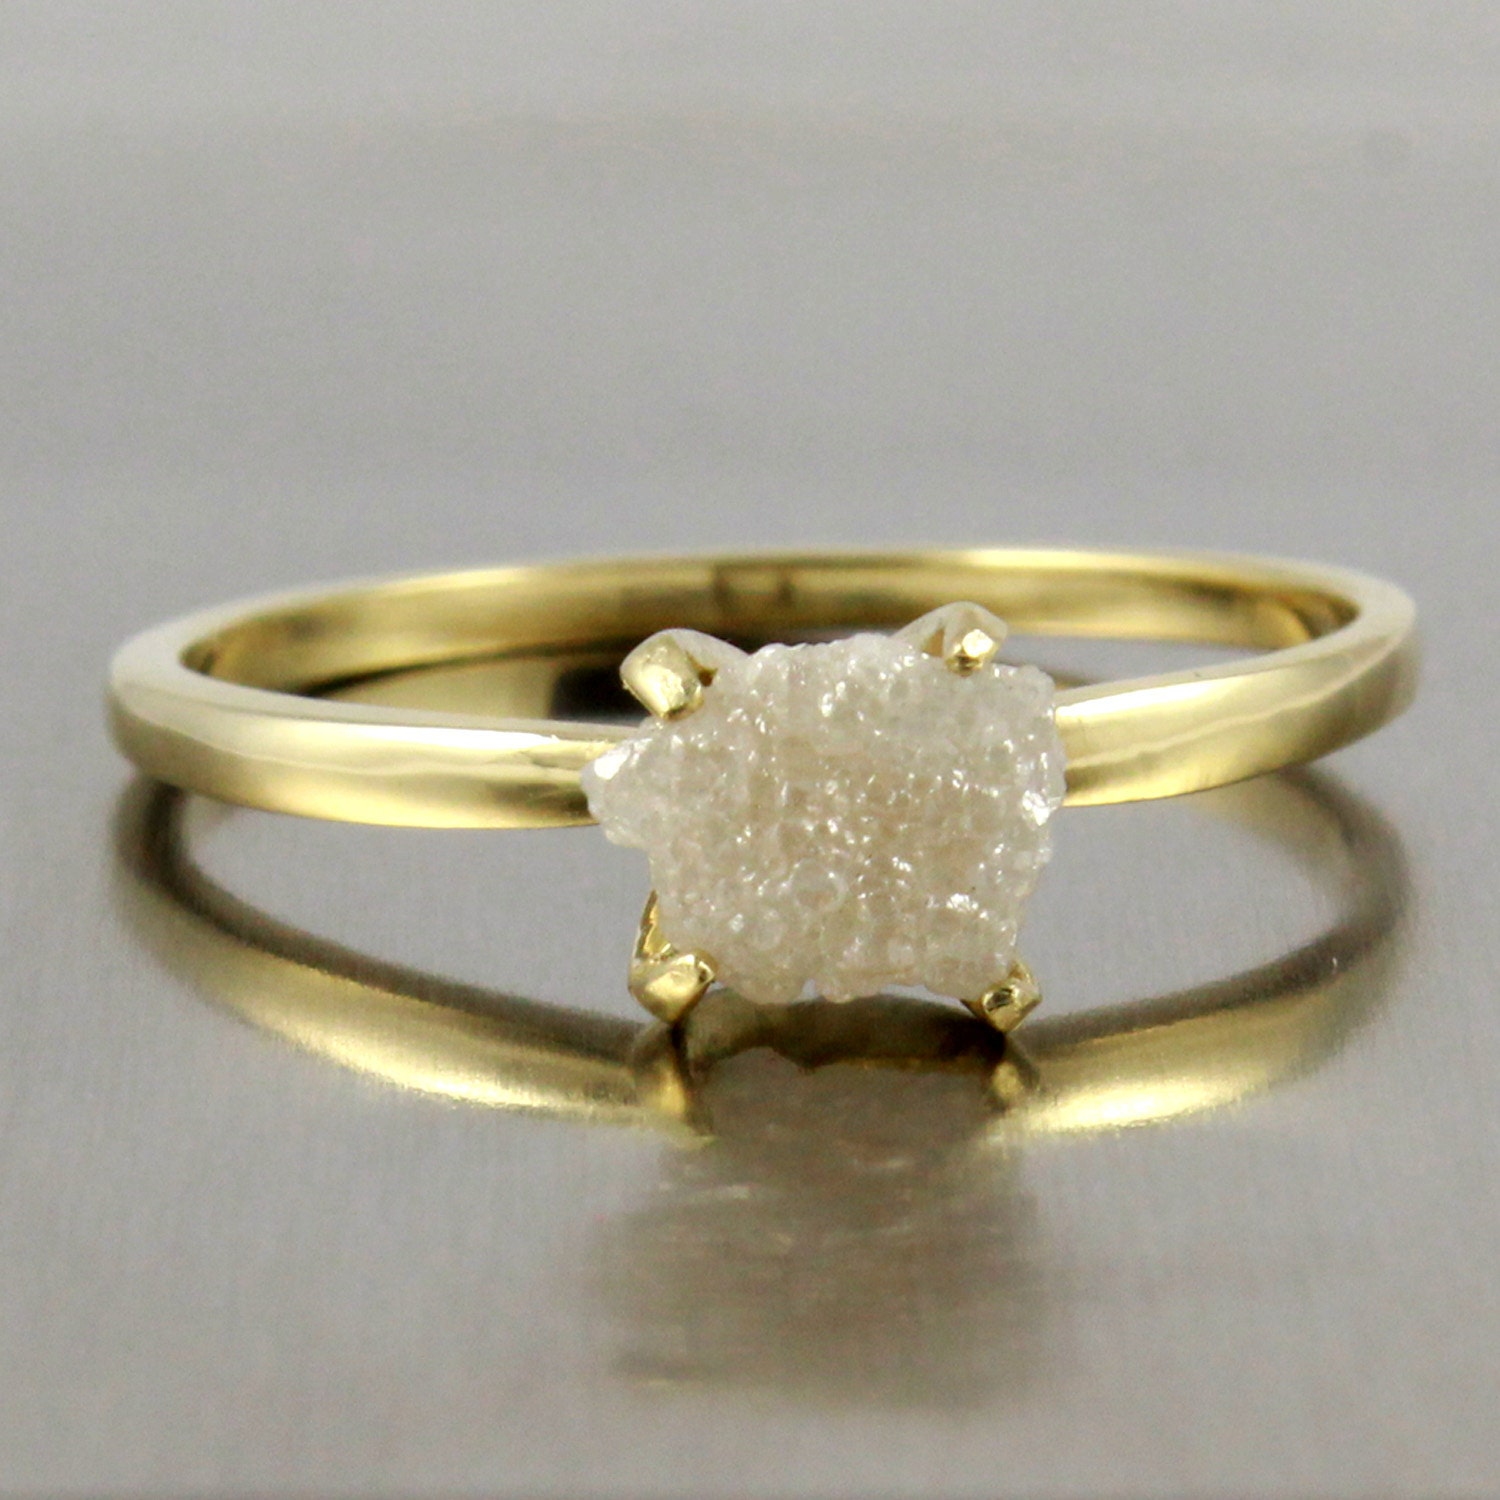 Rough Diamond Rings: Request A Custom Order And Have Something Made Just For You